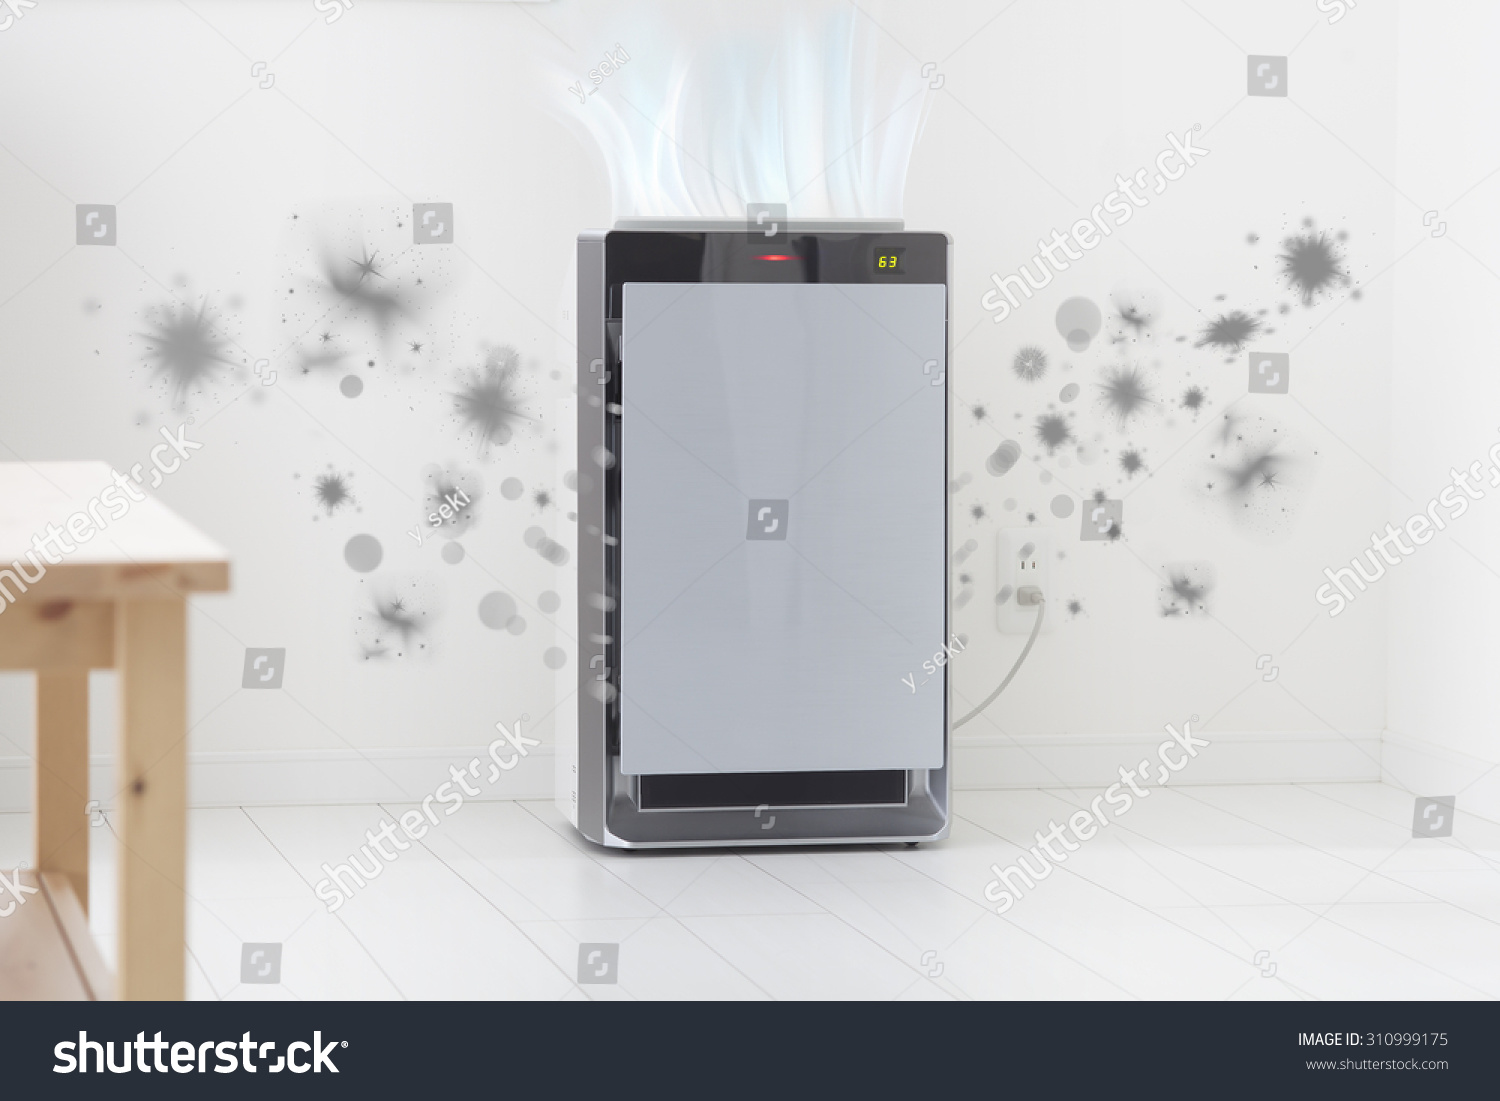 Air Purifier Stock Photo 310999175 : Shutterstock #836748